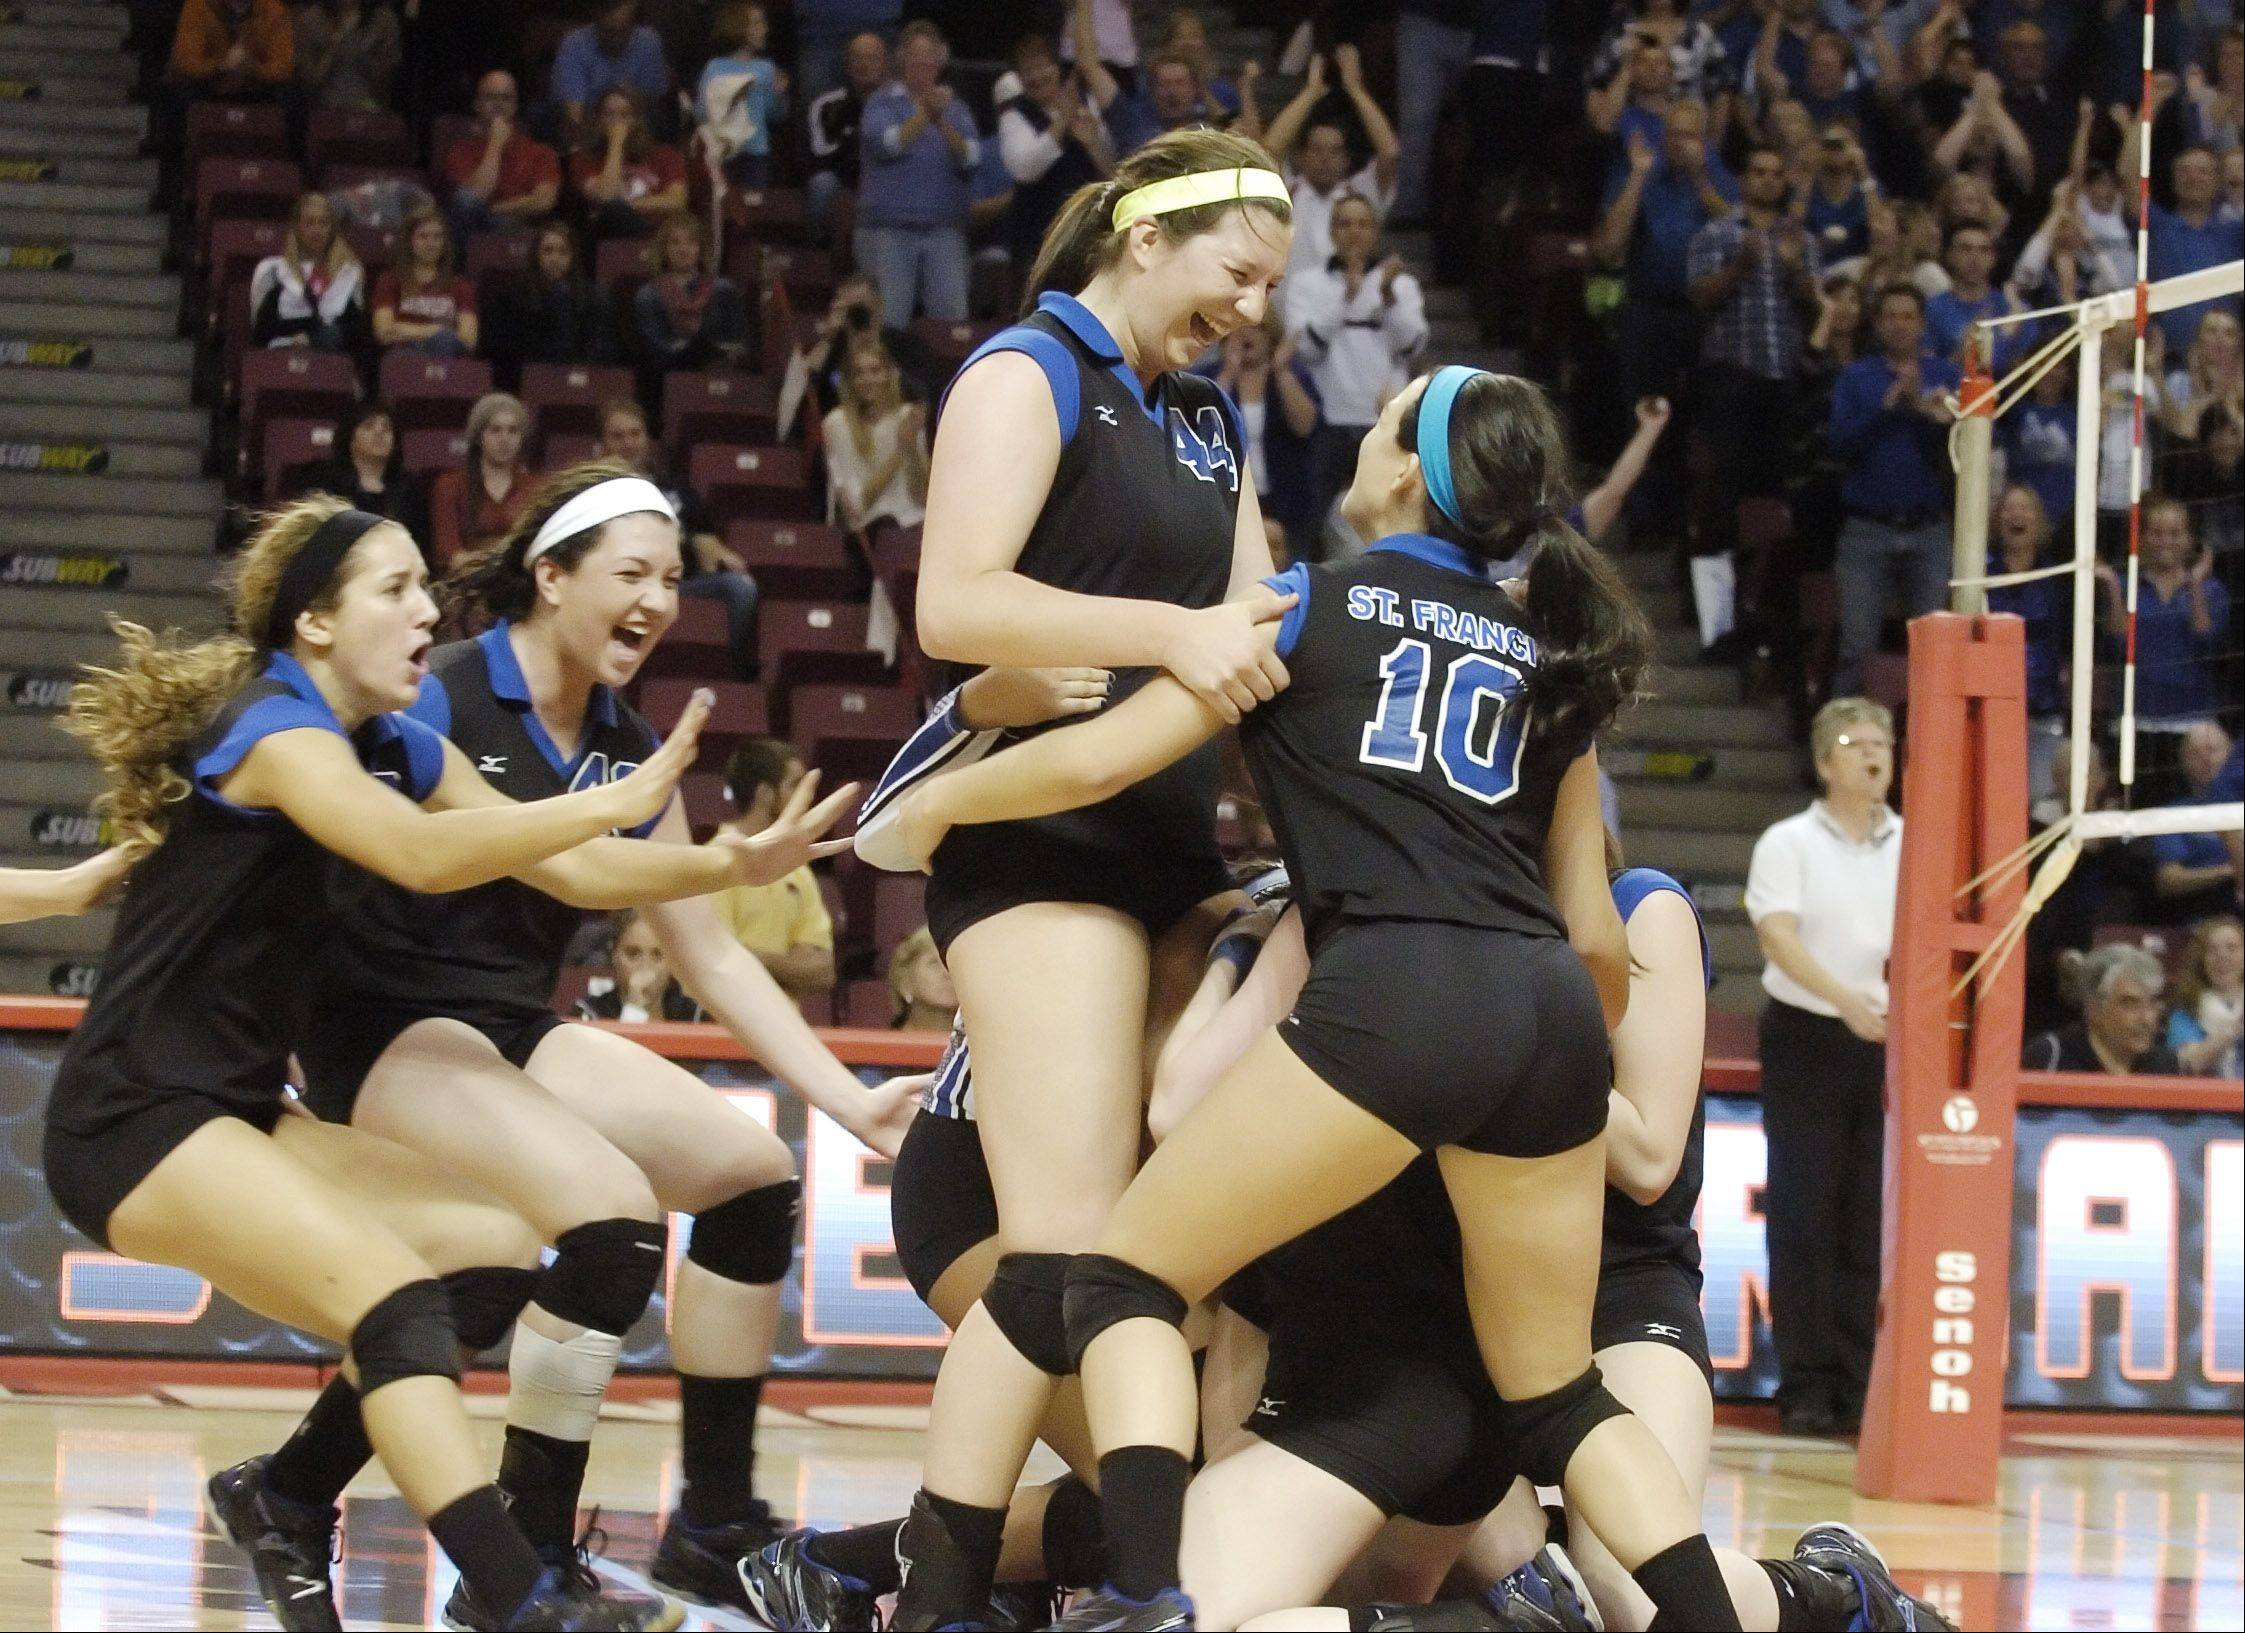 PAUL MICHNA/PMICHNA@DAILYHERALD.COMThe St. Francis girls react to their win during the class 3A girls volleyball championship Saturday at Redbird Arena, on Illinois State campus in Bloomington-Normal.